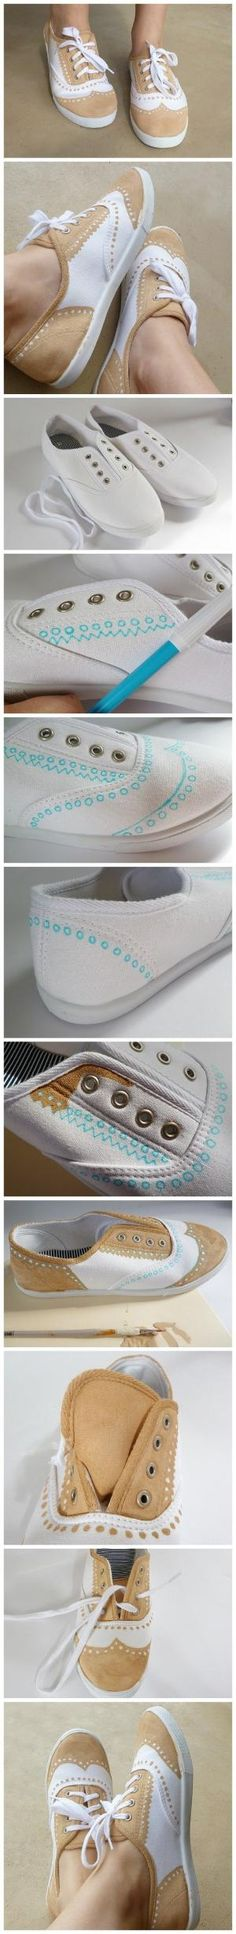 Shoe makeover   how to turn a pair of tennis shoes into beautiful faux painted Oxfords step by step DIY tutorial instructions by Mary Smith fSesz